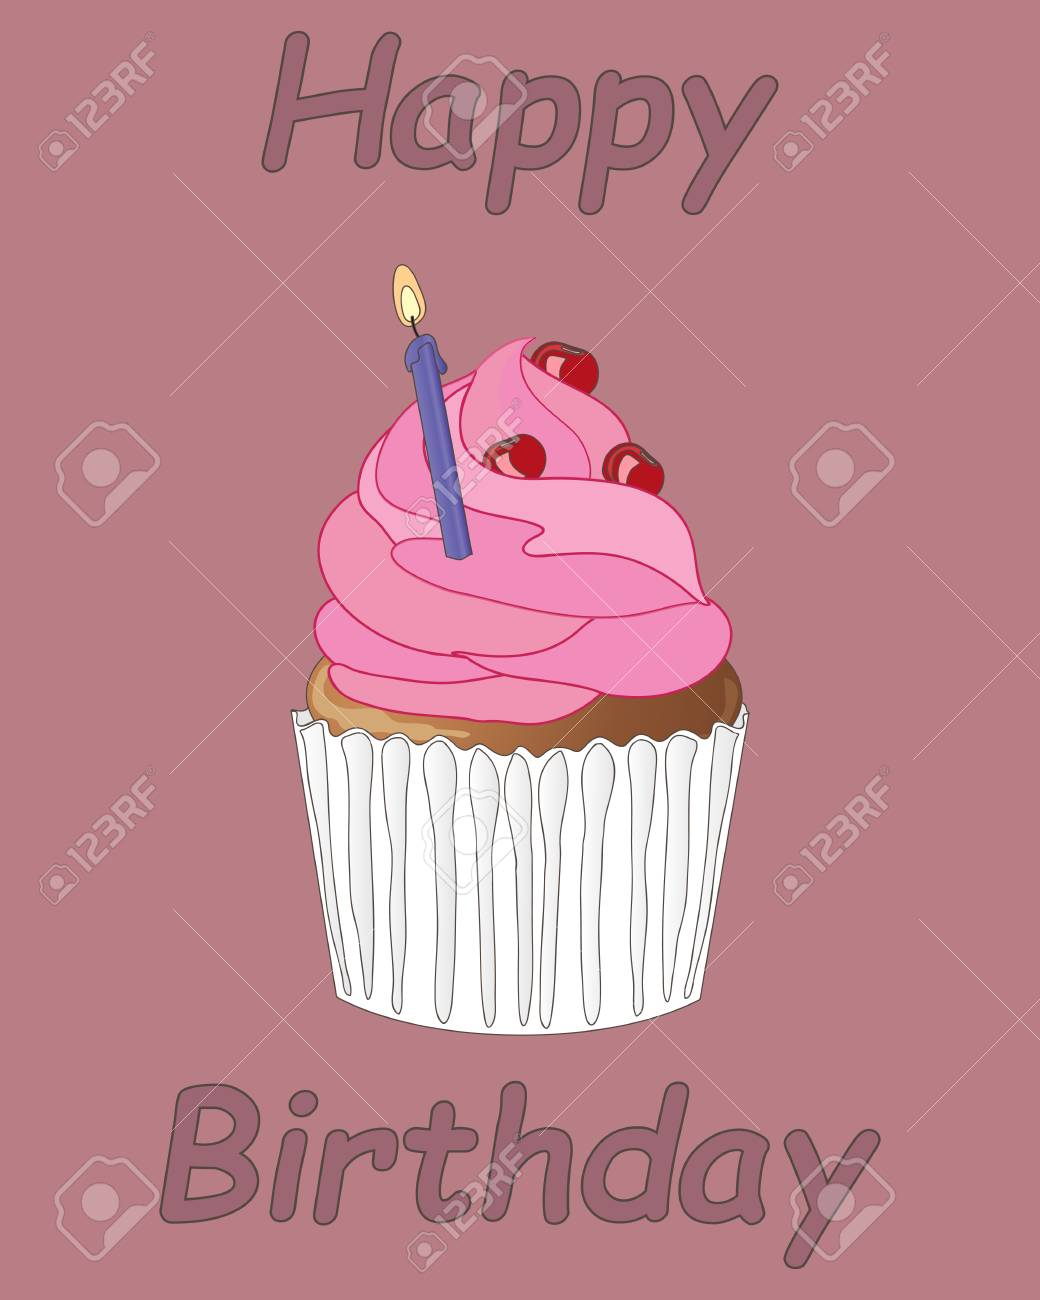 Illustration Of An Individual Birthday Cake With Pink Frosting